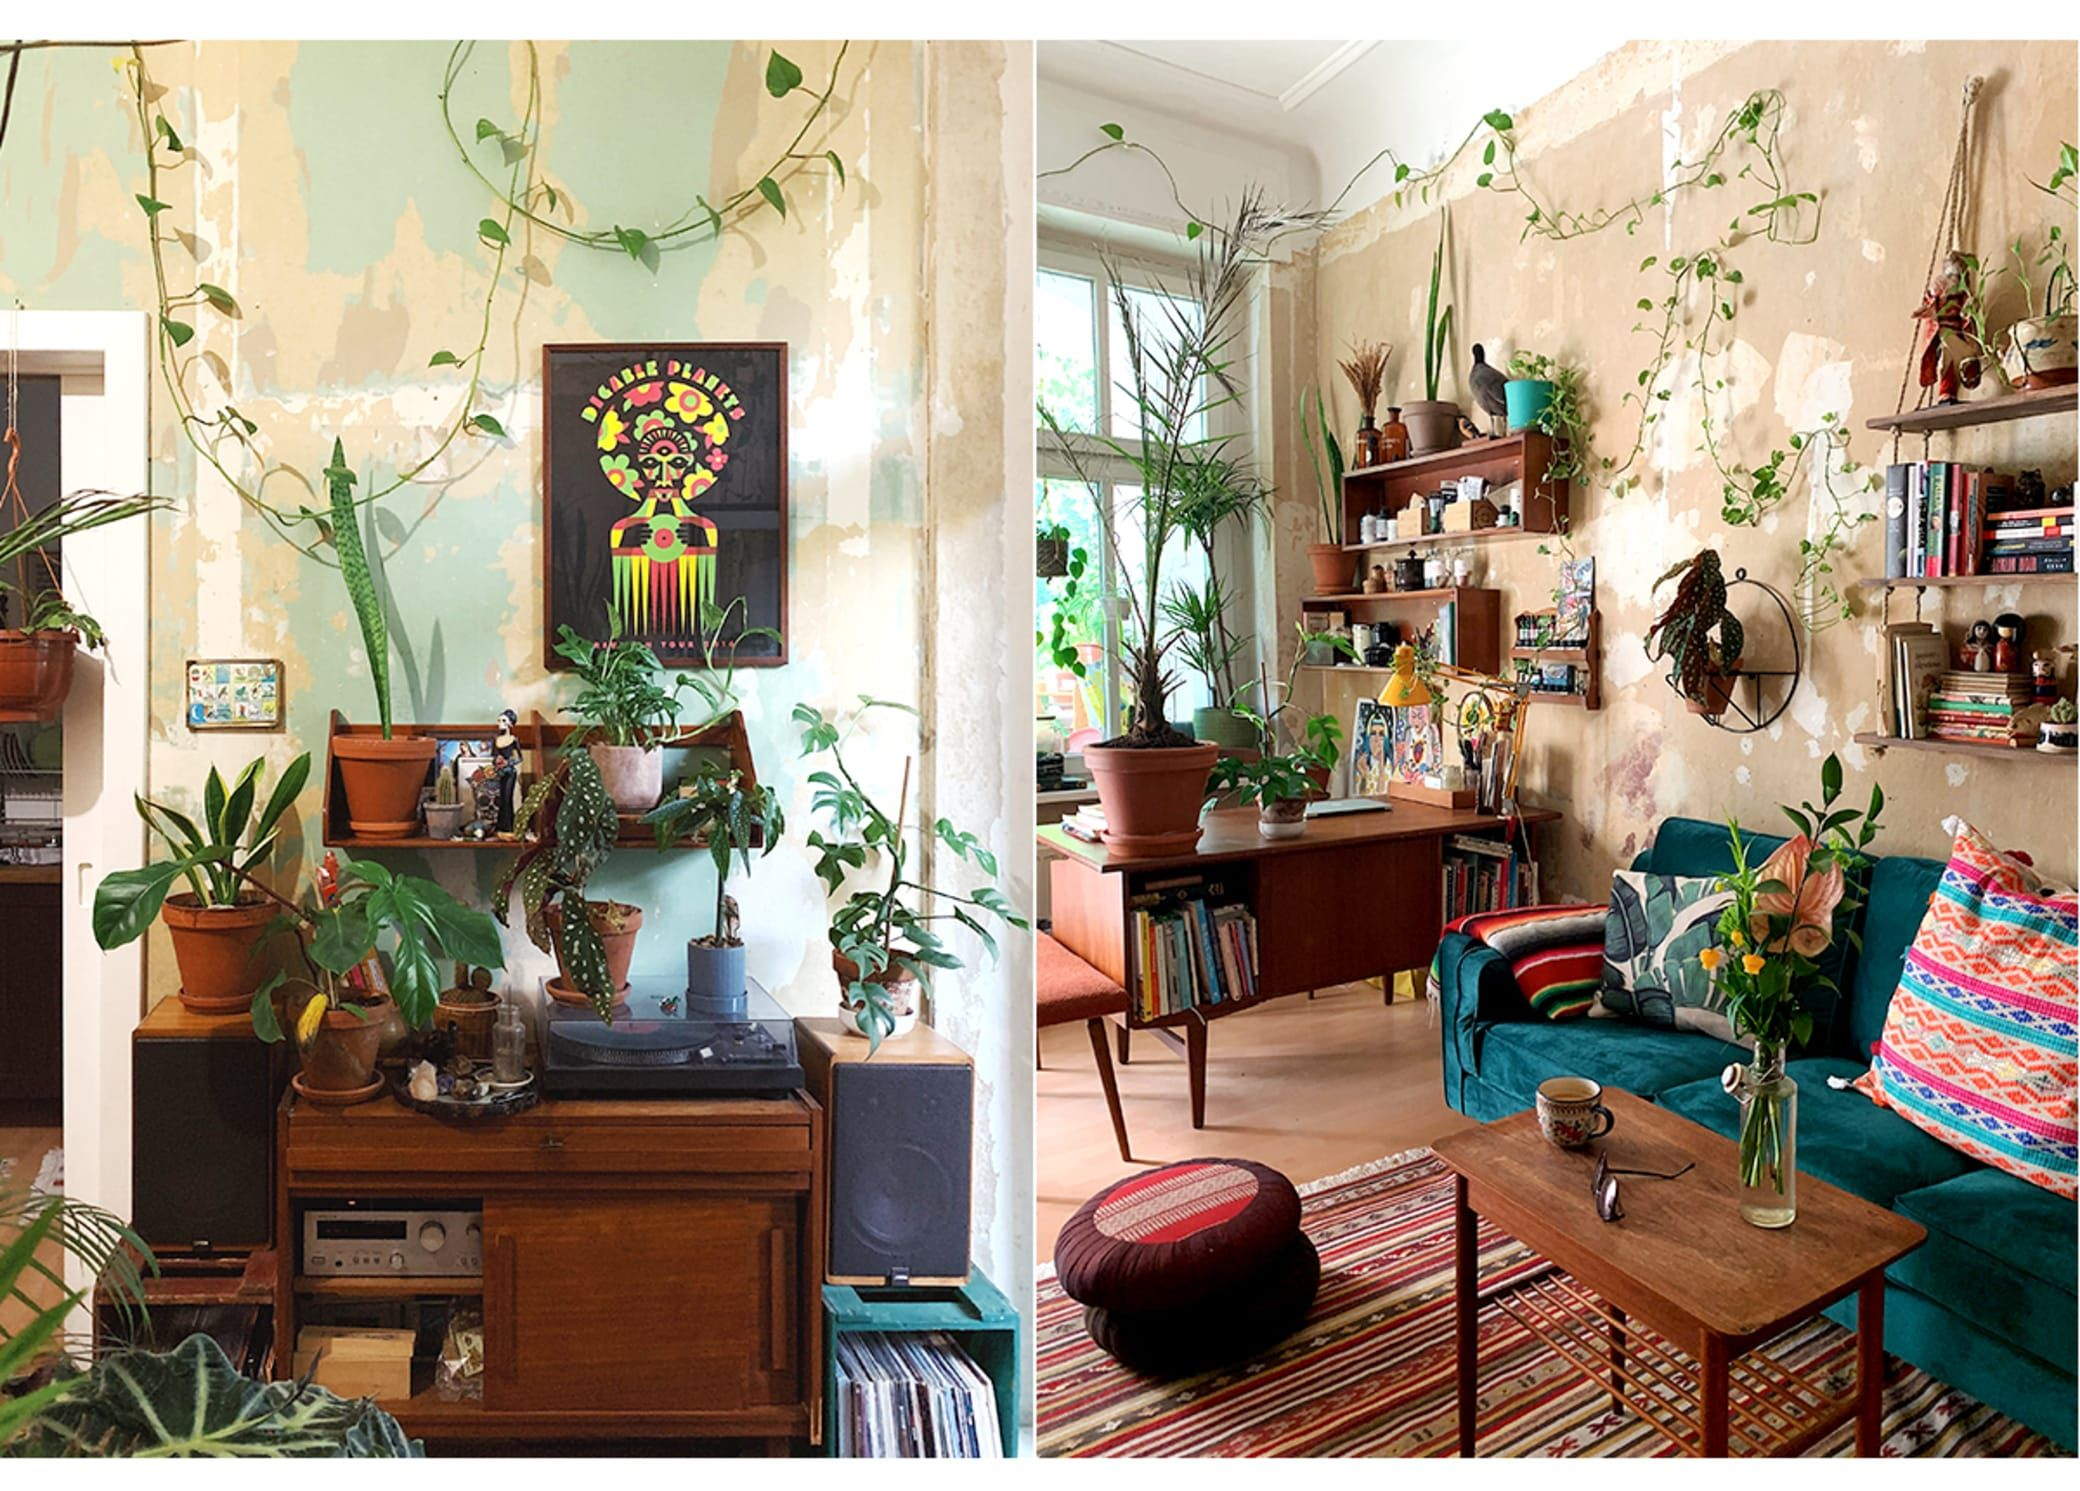 Interior Design Berlin This High-vibe Home In Berlin Has Plants That Reach The Ceiling | Home, House Styles, Interior Design